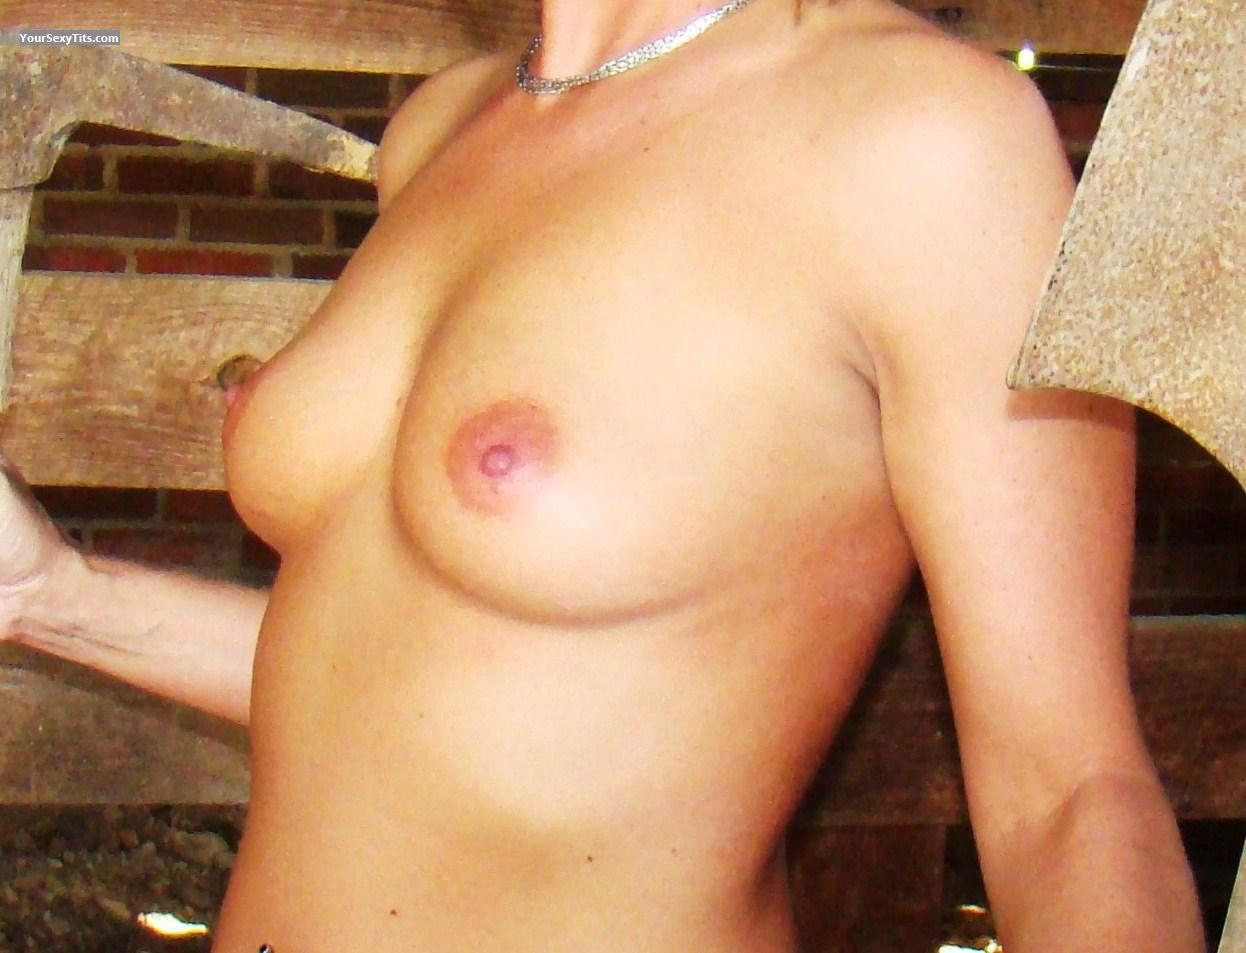 Tit Flash: Small Tits - Country Girl from United States